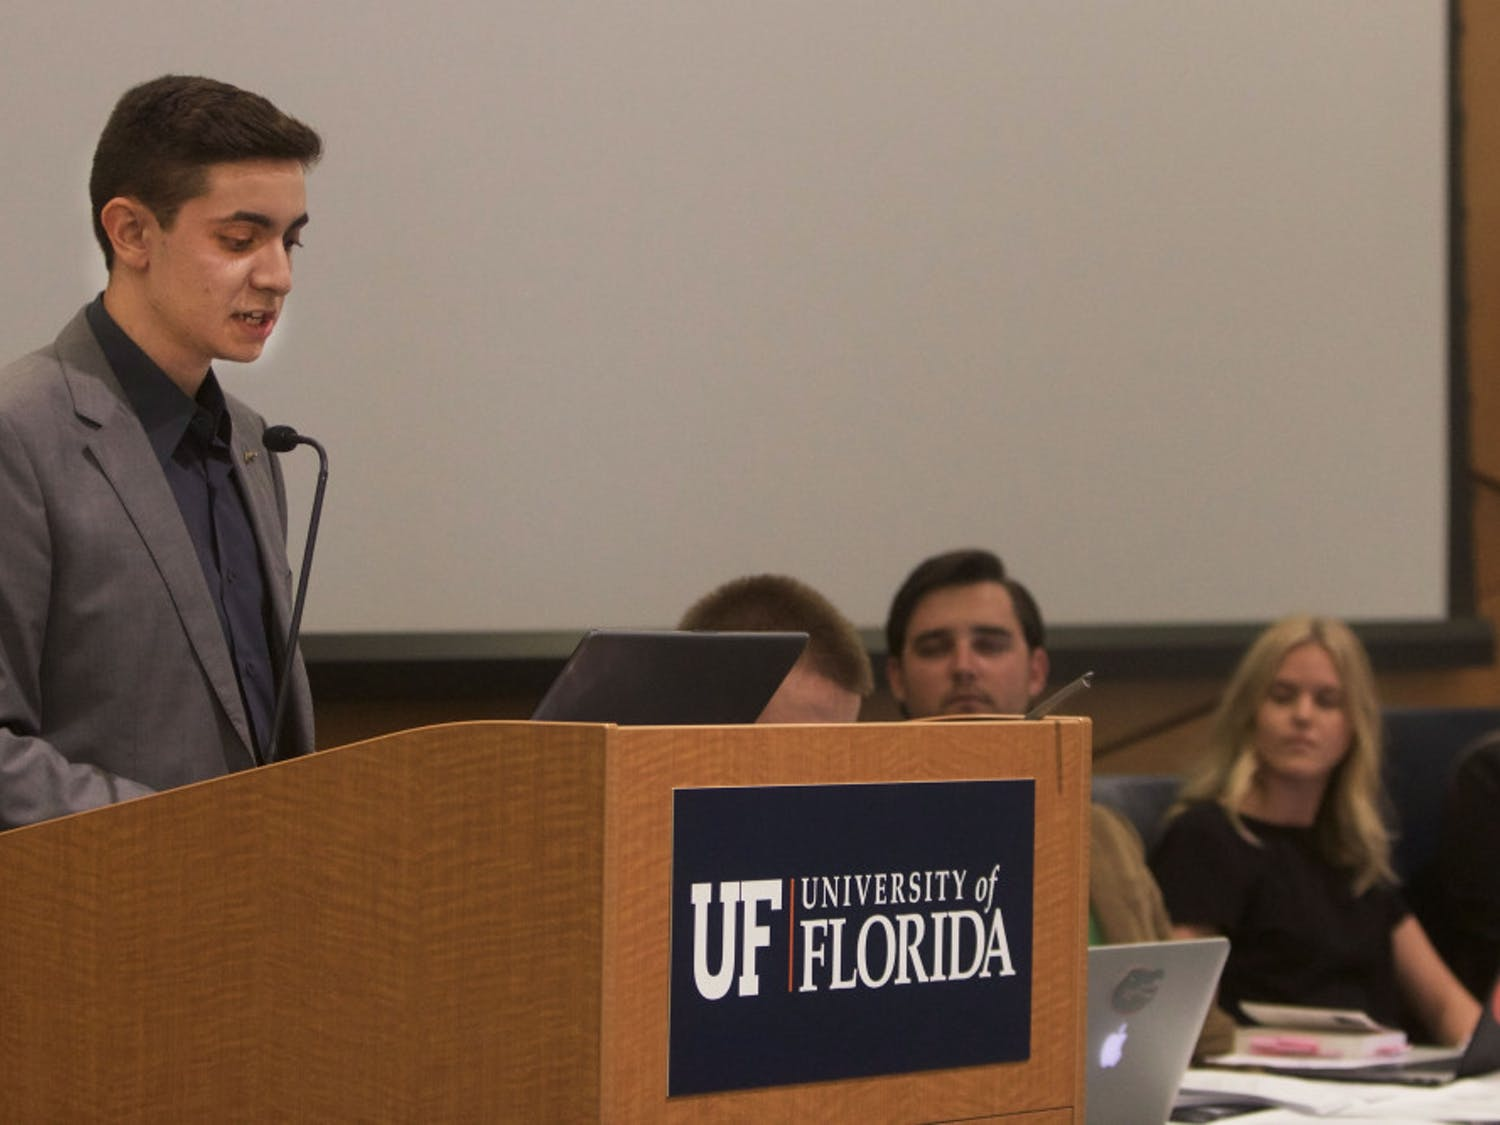 Mauricio Perez announces he is disaffiliating from the Impact Party during the final Student Government Senate meeting of the summer in the Reitz Union chamber room August 6.